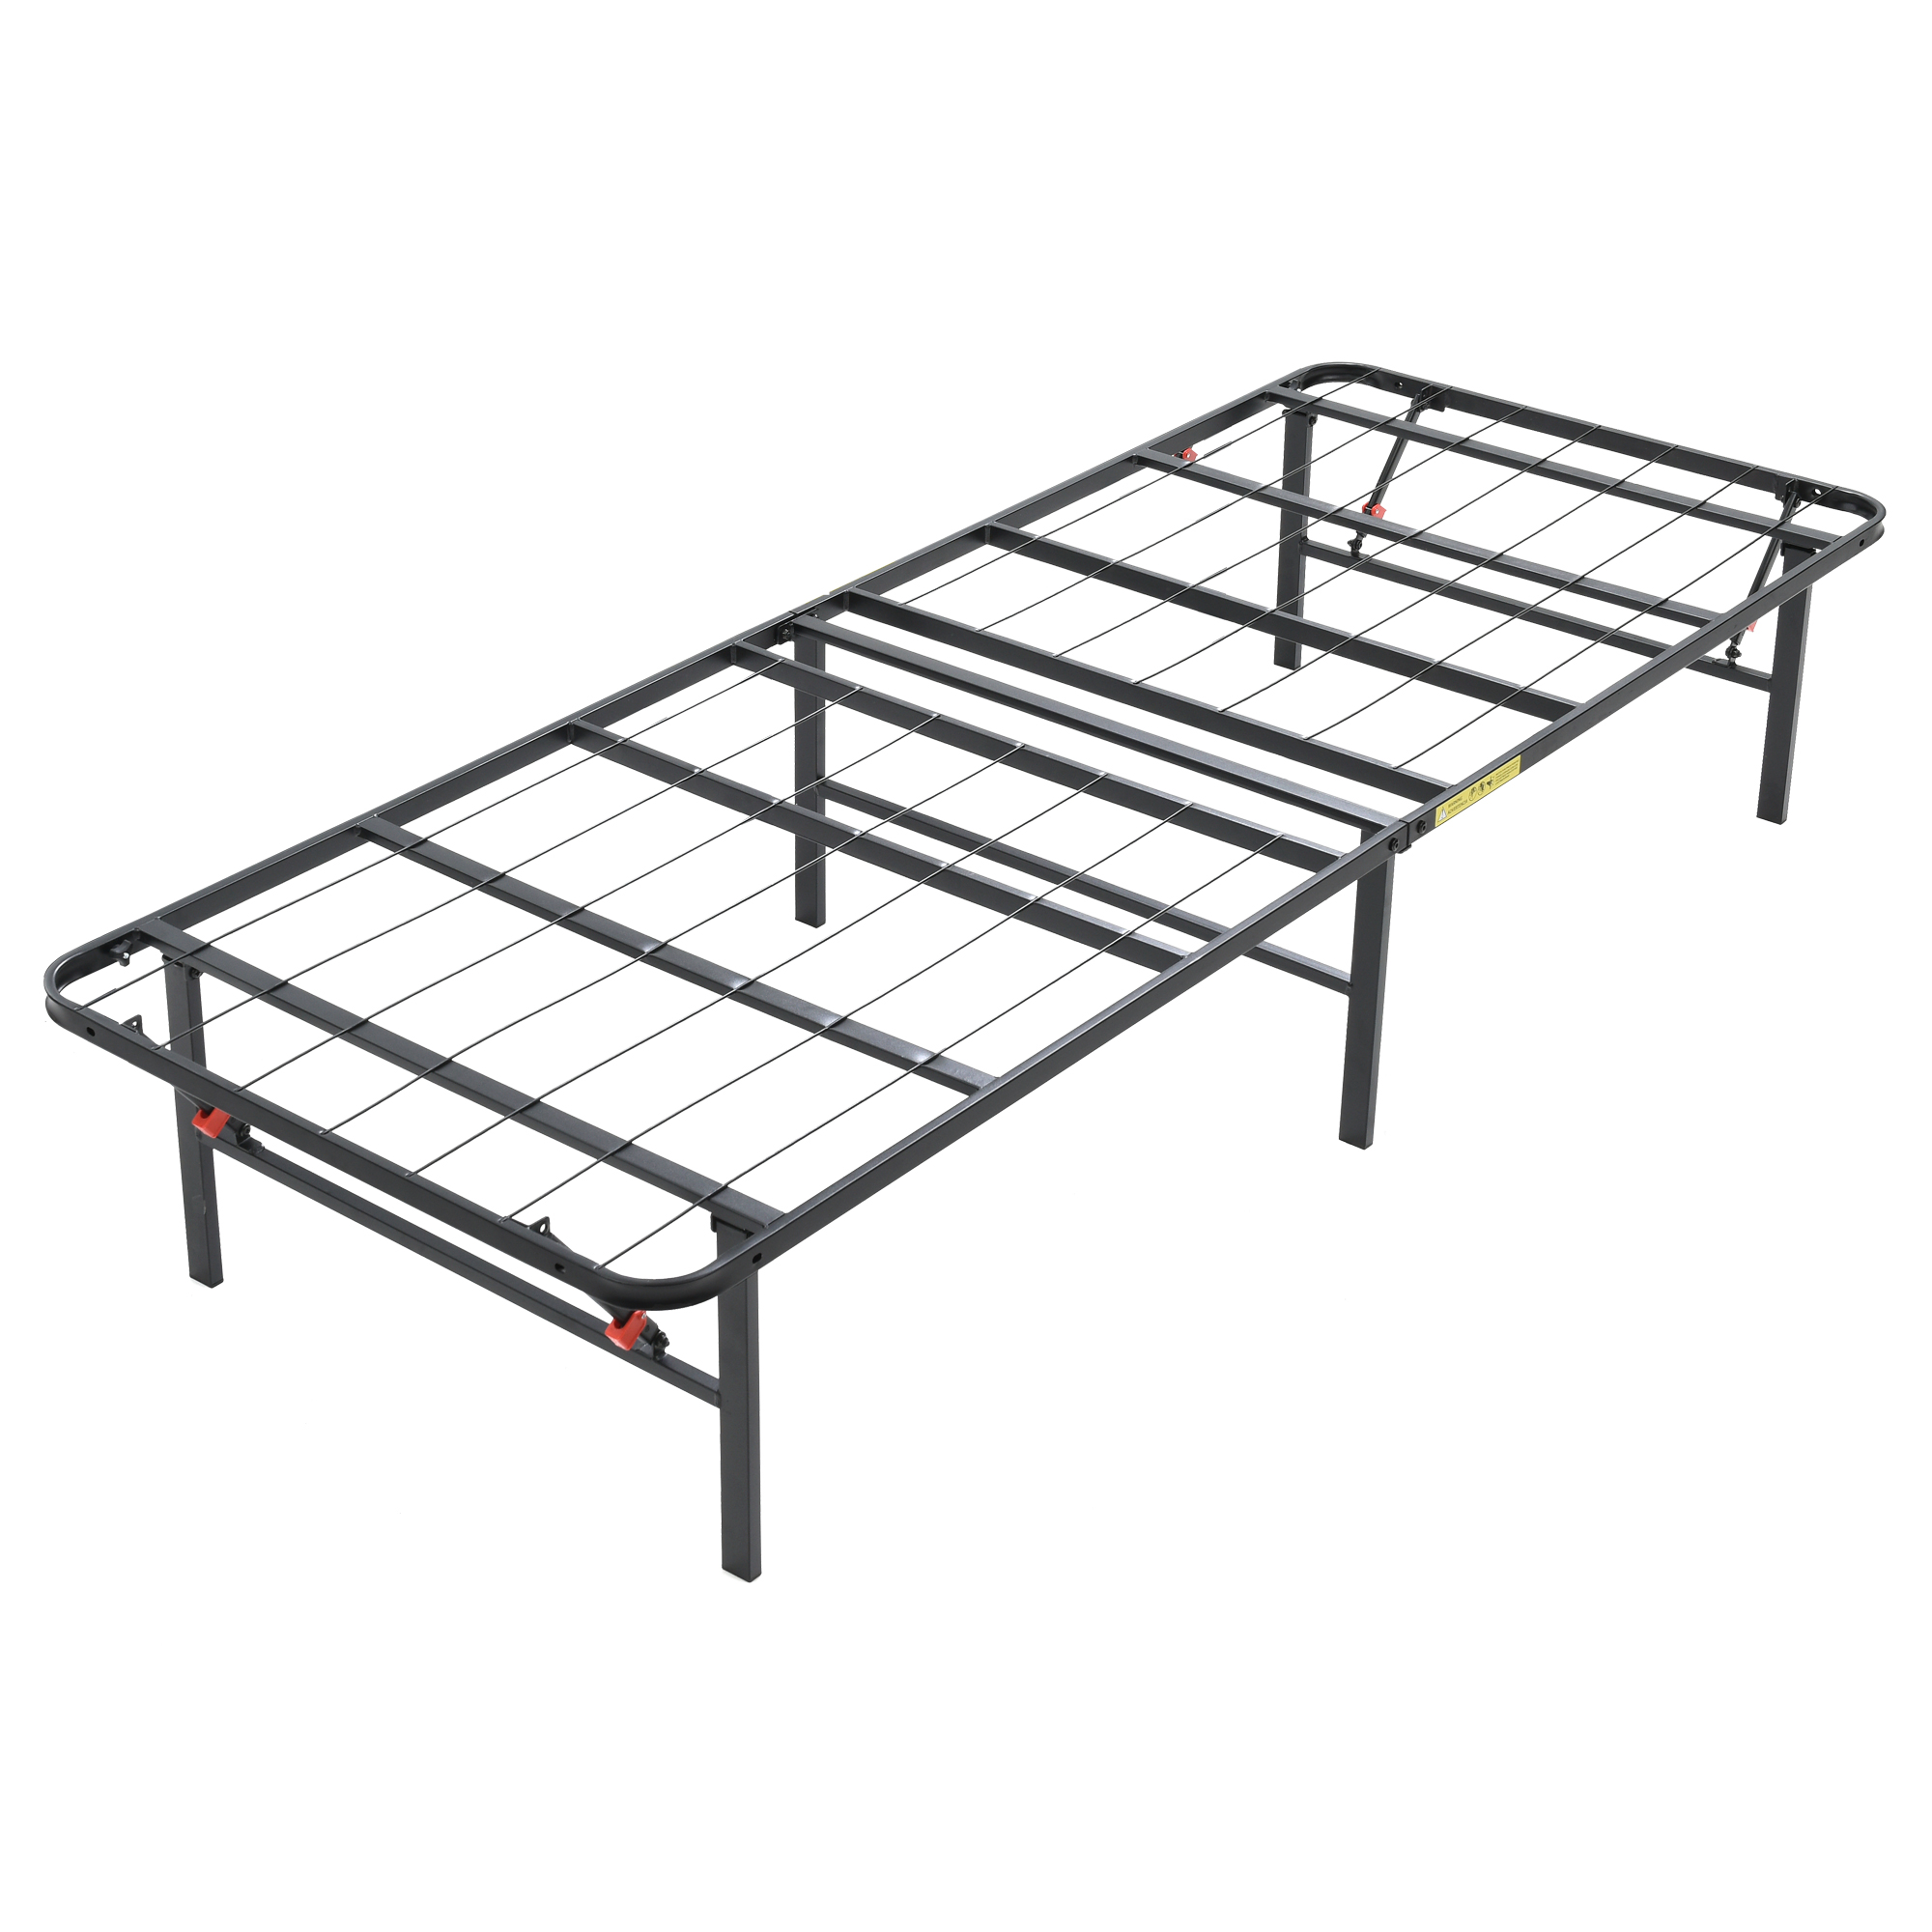 modern sleep hercules heavy duty 14 inch platform metal bed frame I-beam Construction modern sleep hercules heavy duty 14 inch platform metal bed frame mattress foundation multiple sizes walmart